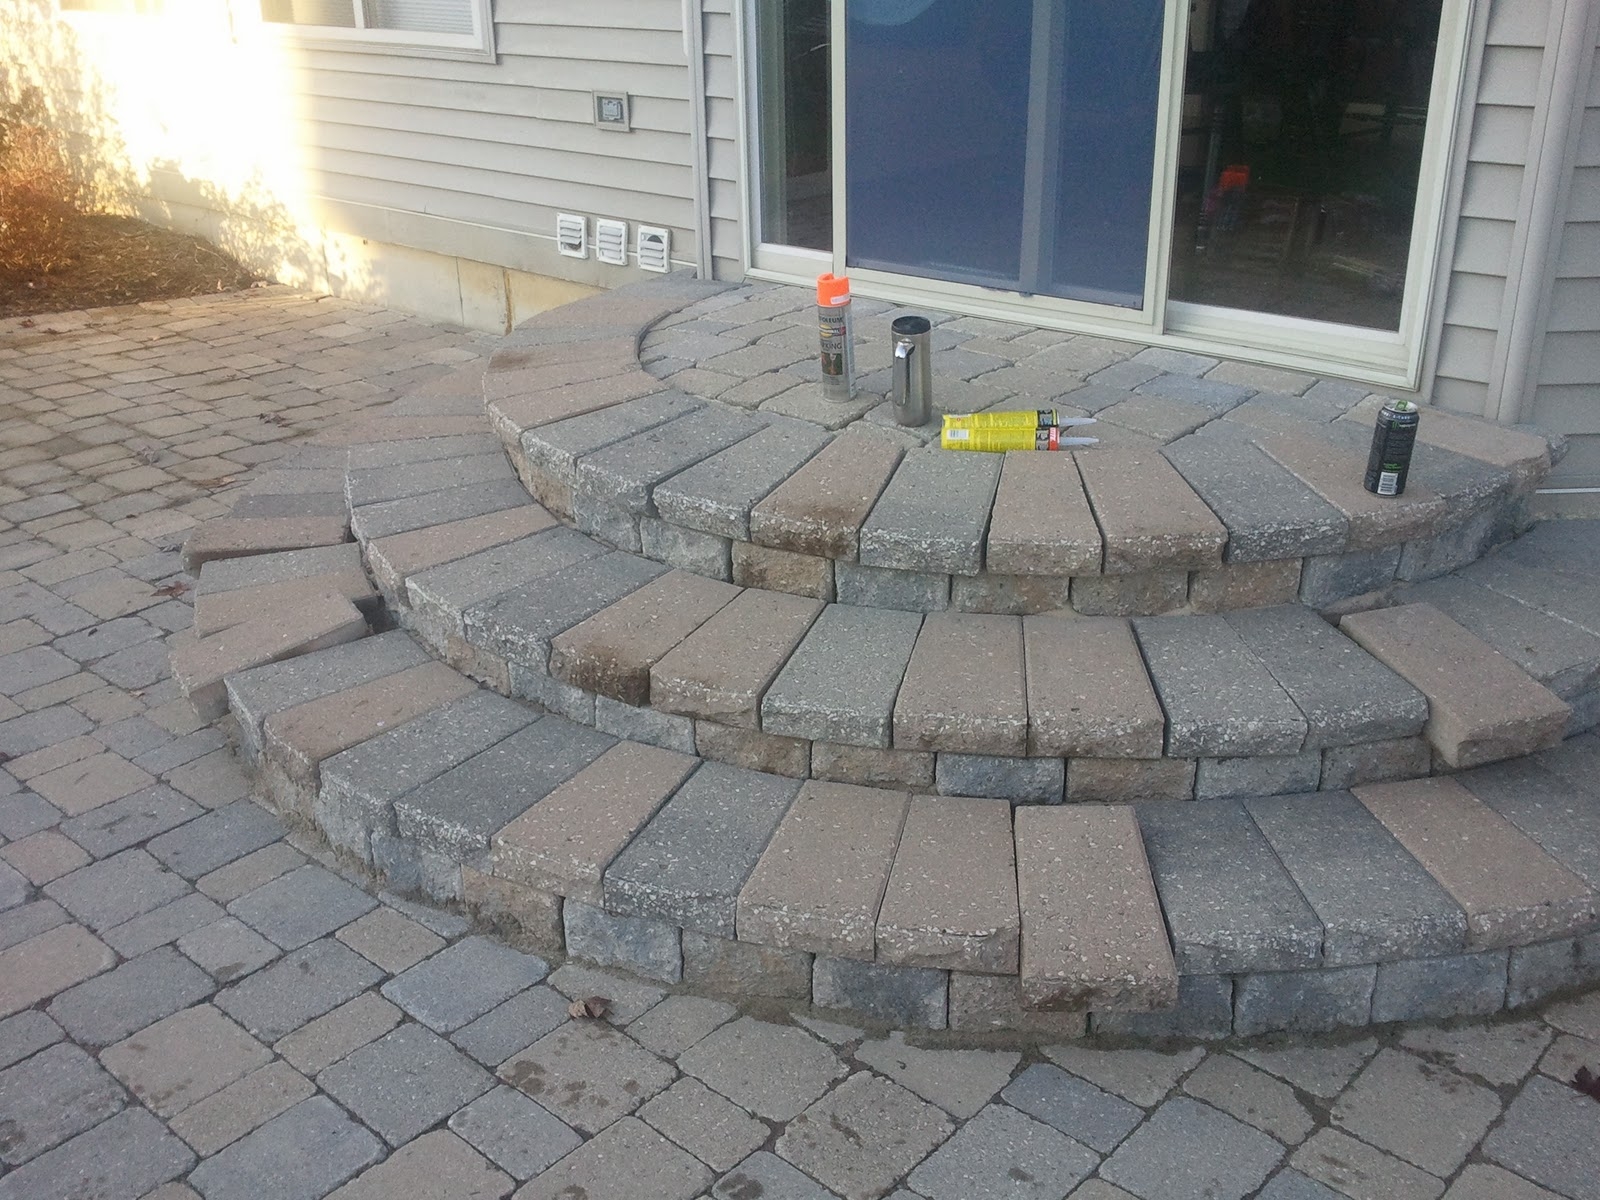 Brick pavers canton plymouth northville novi michigan repair cleaning - Brick Doctor Bill Brick Pavers Repair Cleaning